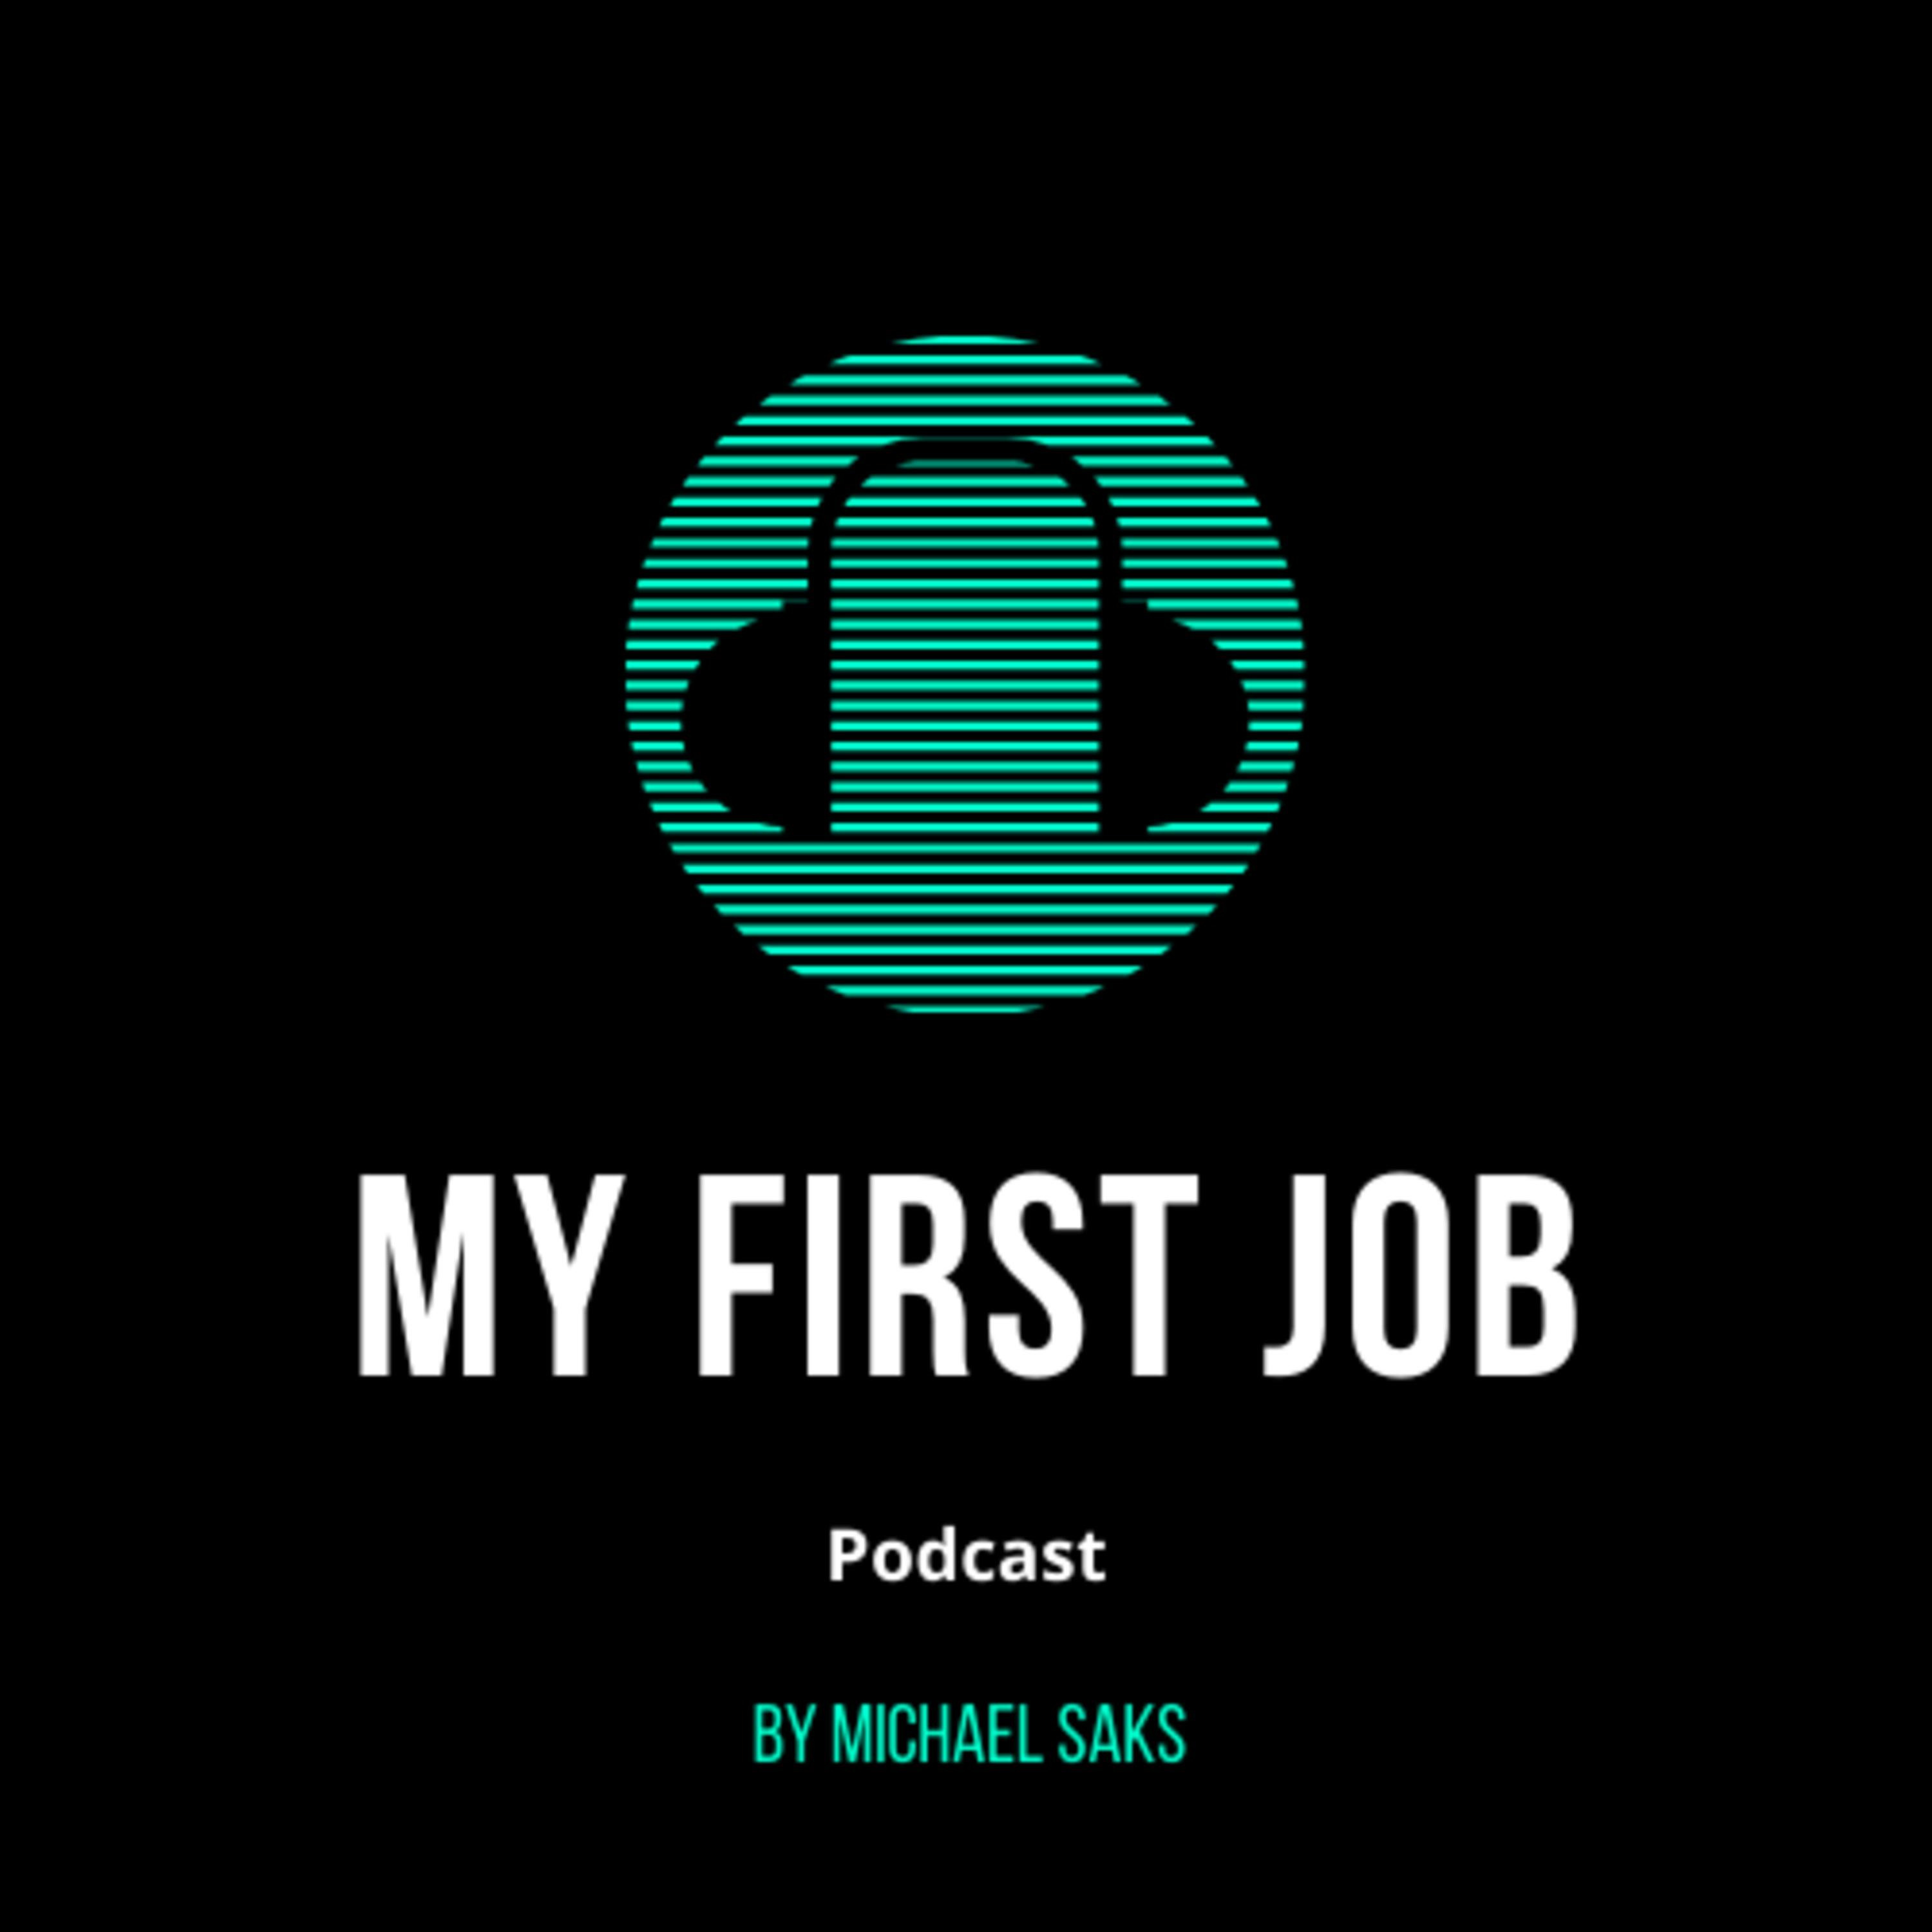 Episode 1: The Introduction to the Podcast with Michael Saks